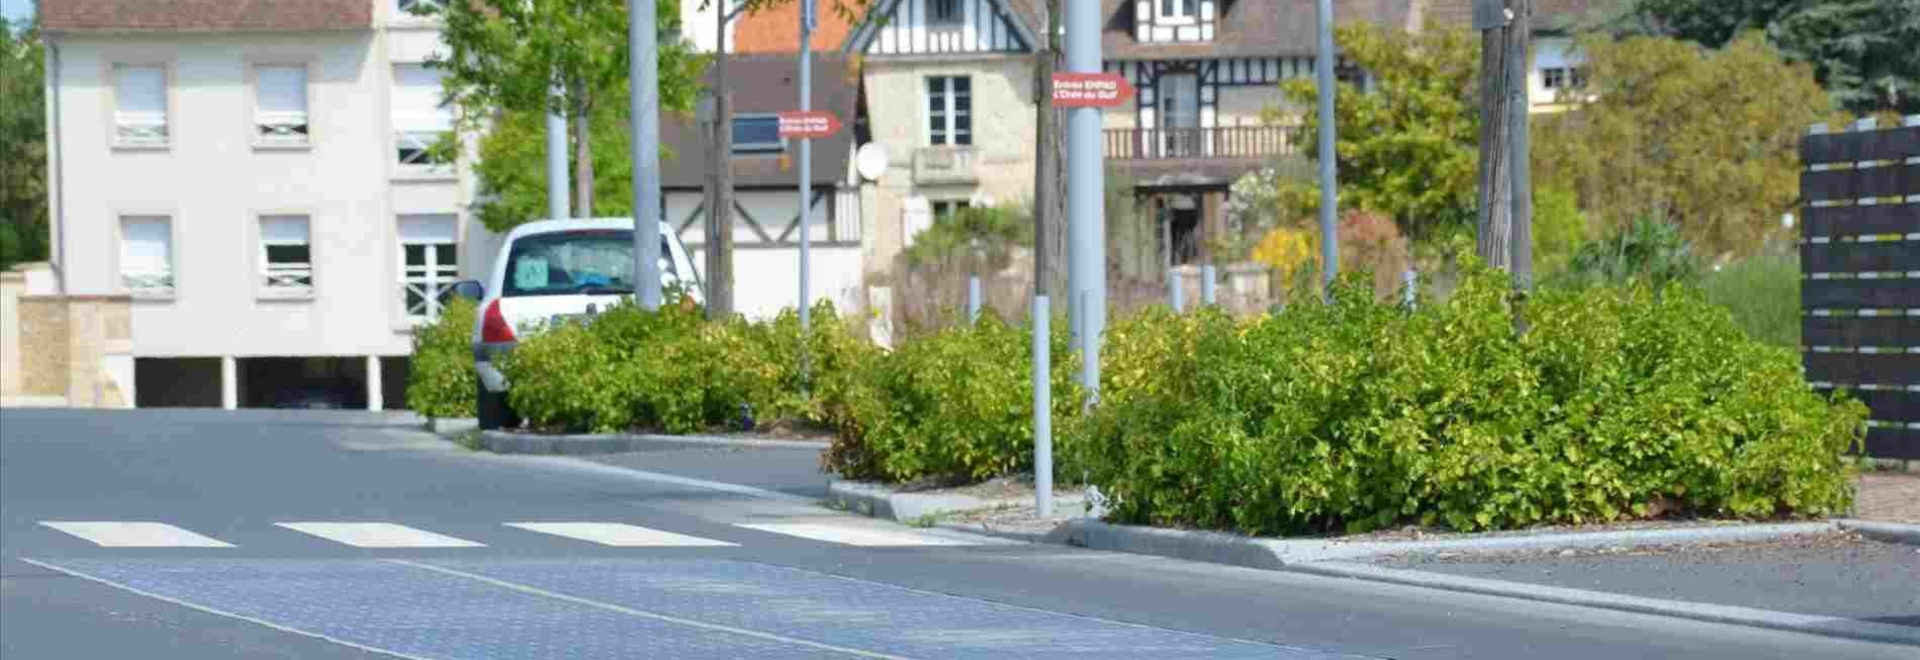 Wattaway has developed PV modules that can be placed on roads (Photo: Wattaway)